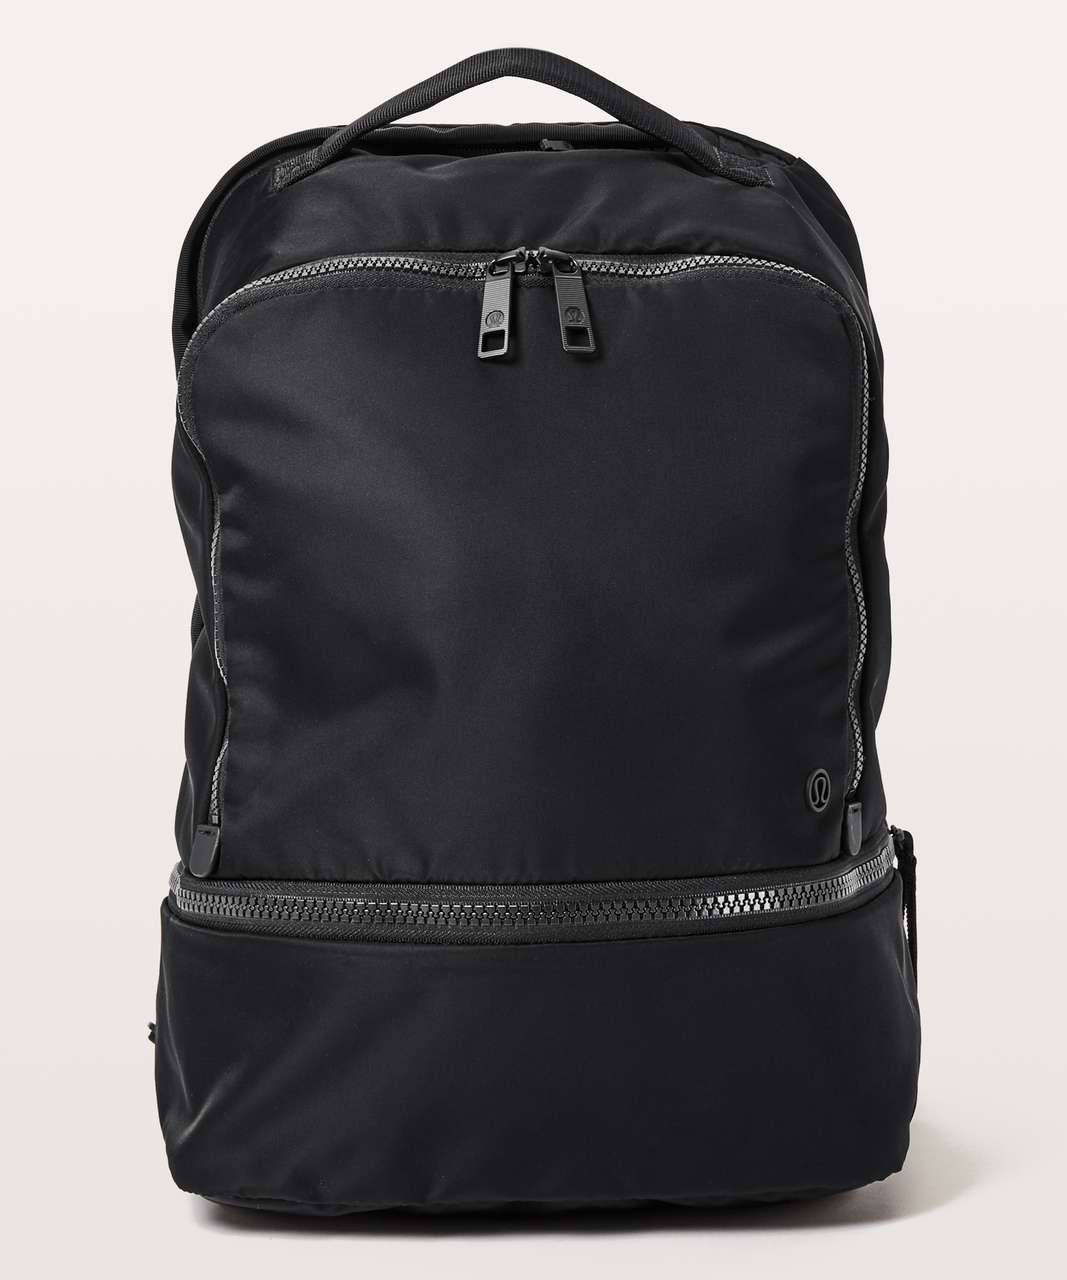 Lululemon City Adventurer Backpack *17L - Black (First Release)